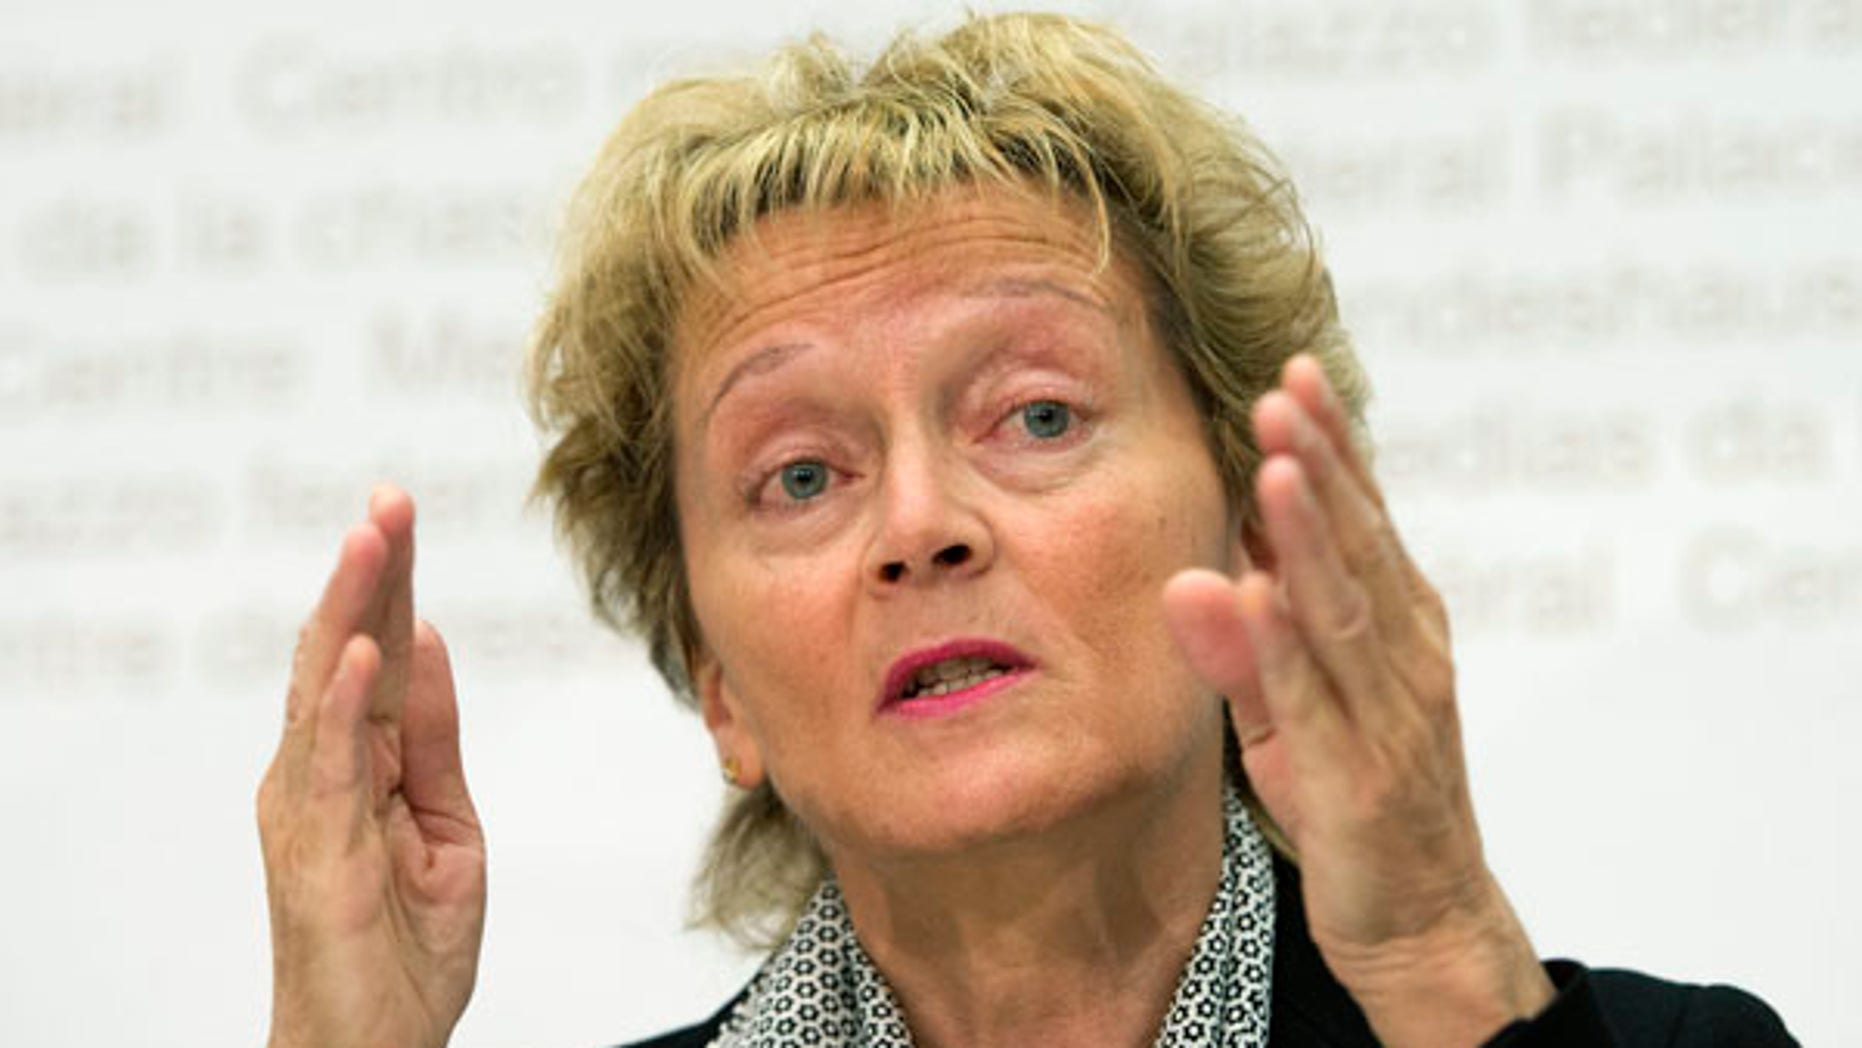 May 29, 2013: Swiss Finance Minister Eveline Widmer-Schlumpf speaks during a press conference in Bern, Switzerland. The Swiss government says it will let banks circumvent the country's strict client secrecy laws as part of an effort to end a long-running tax evasion dispute with the United States.